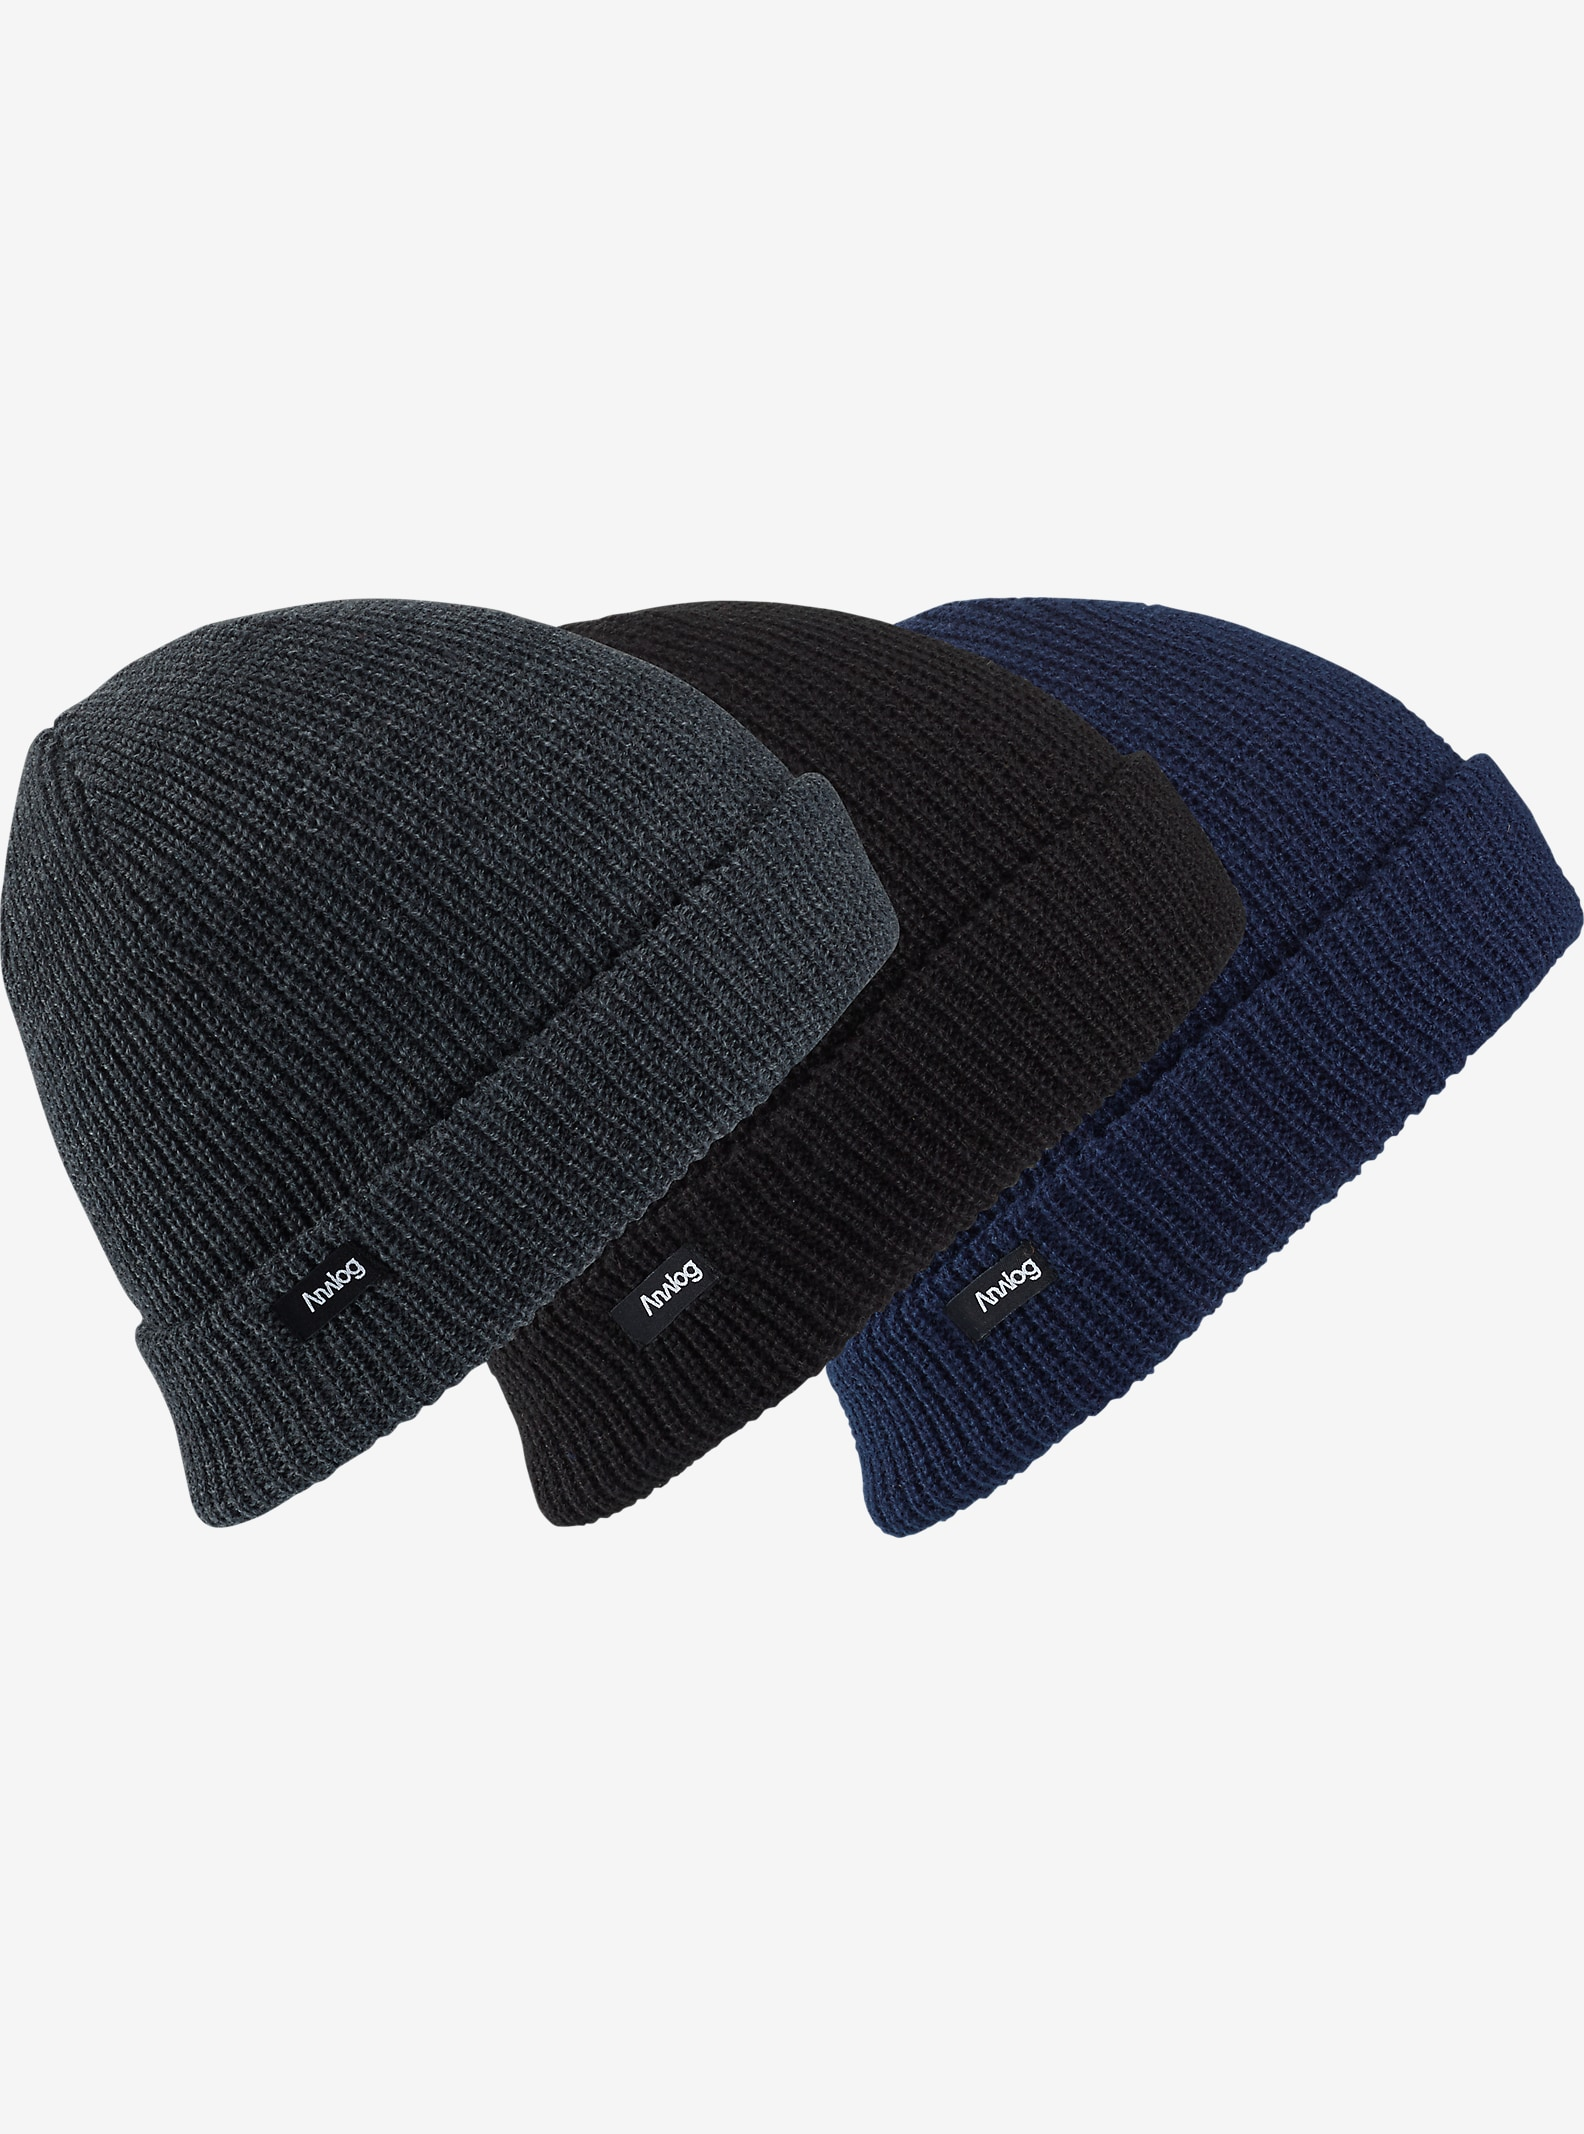 Analog Beanie 3-Pack shown in Navy / Gray / Black